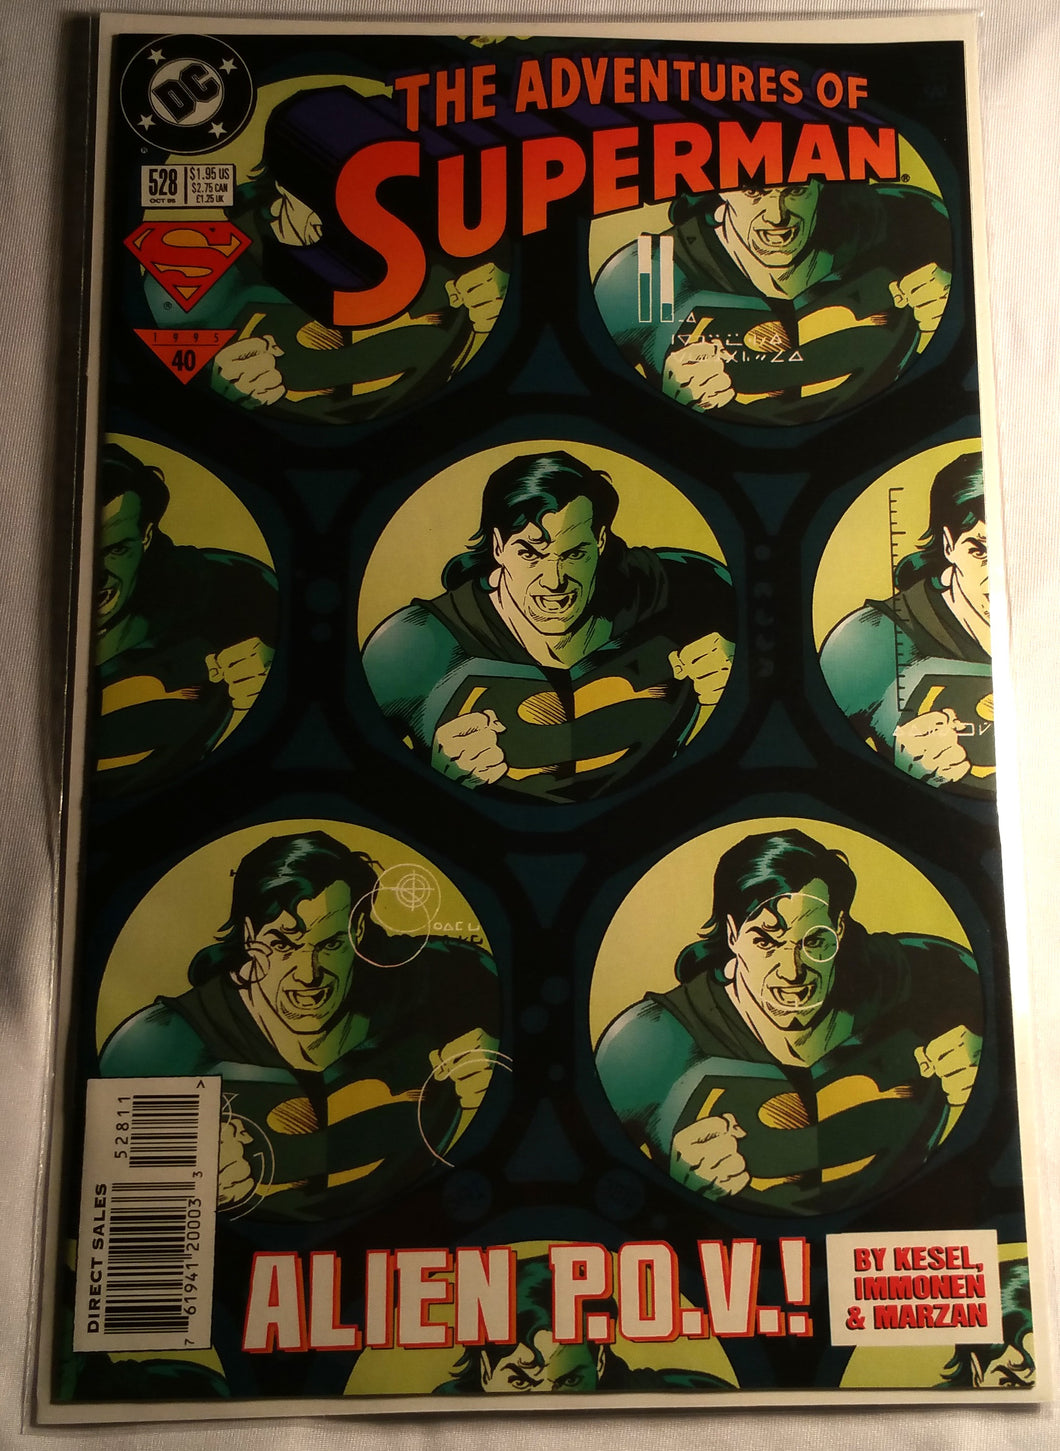 The Adventures of Superman #528 - Alien P.O.V!